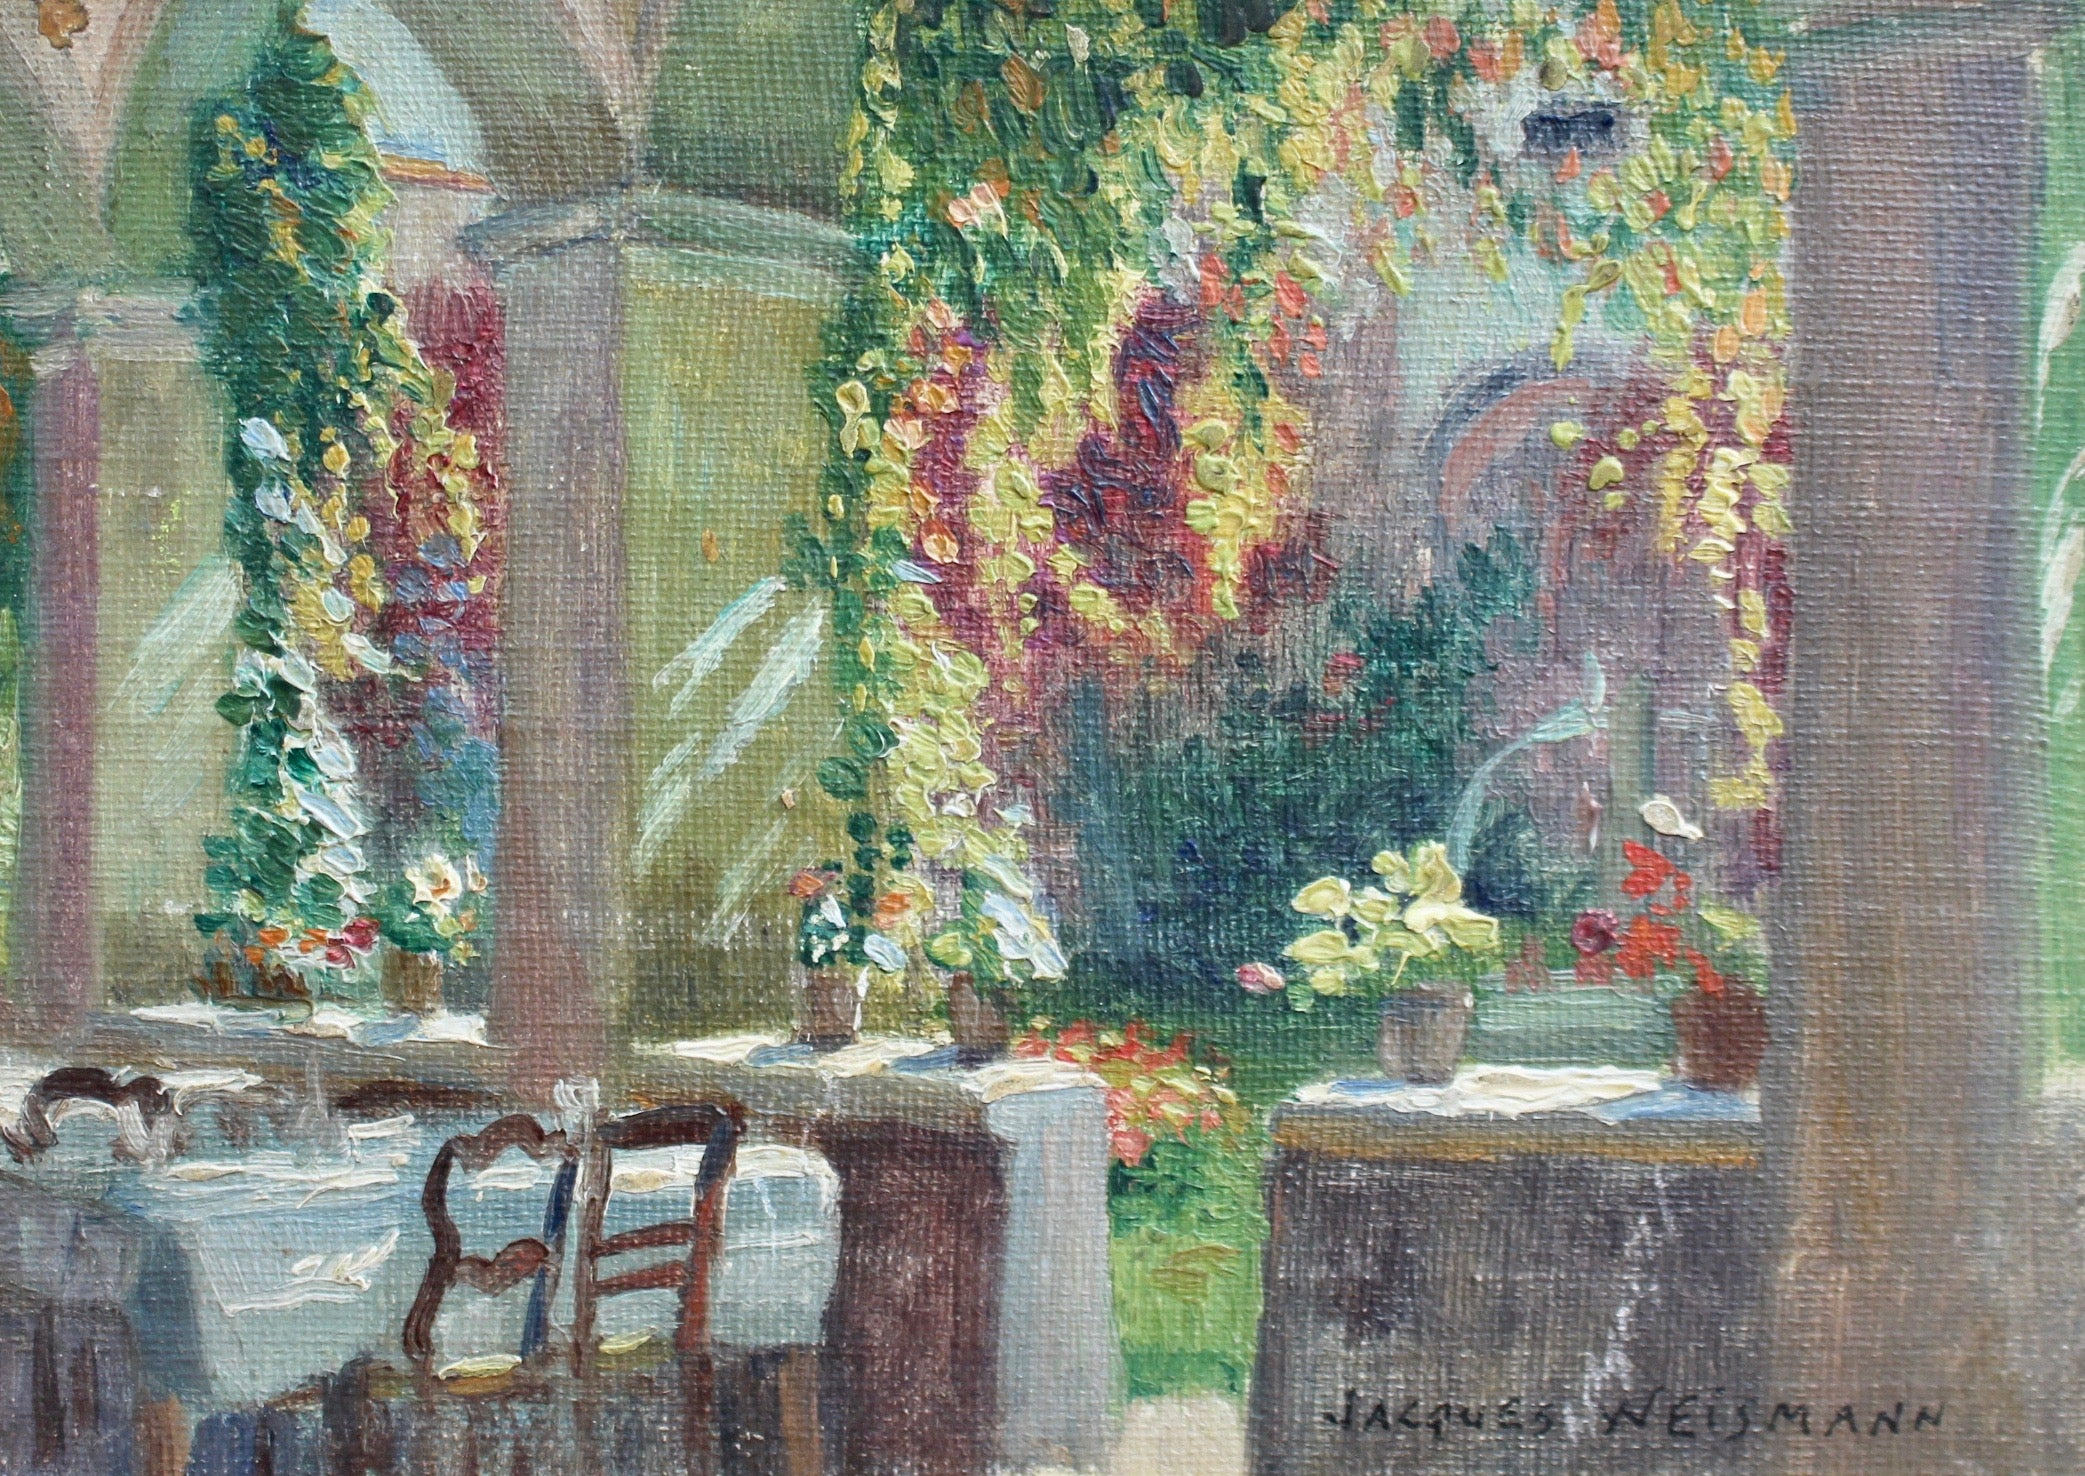 'Garden Restaurant at Lake Annecy', by Jacques Weismann (circa 1920s)